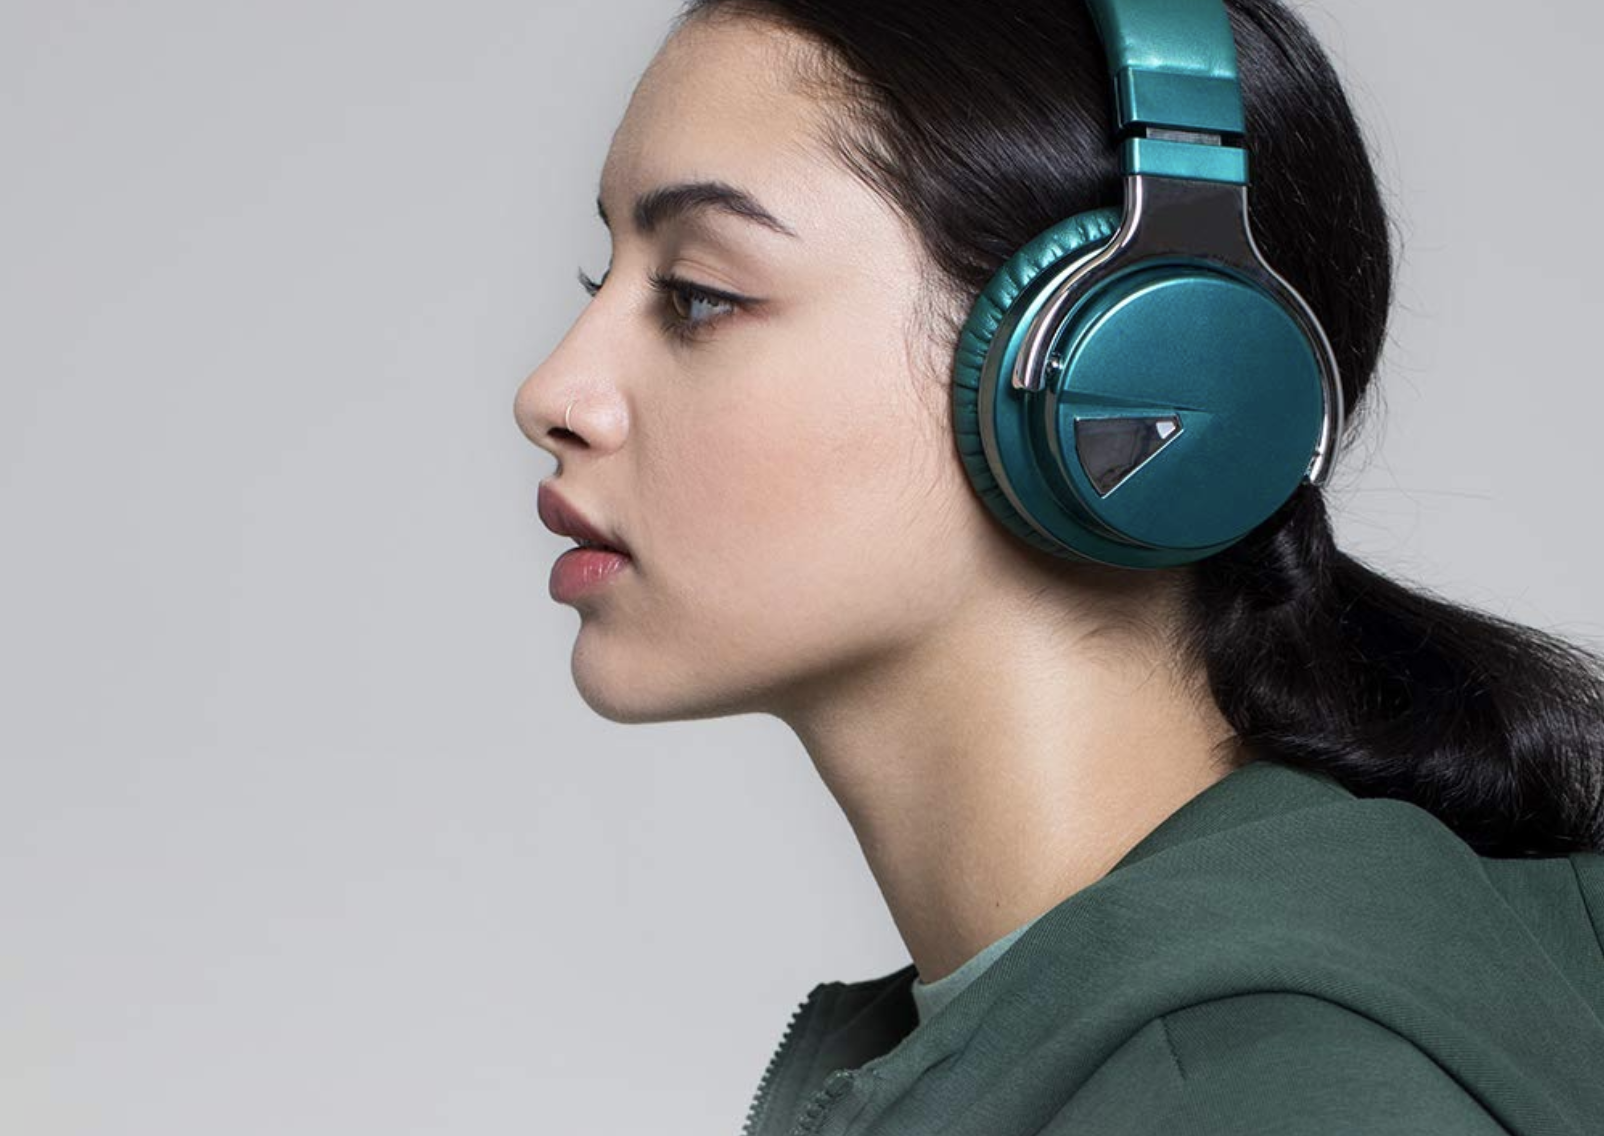 Model with a pair of dark teal over the ear headphones